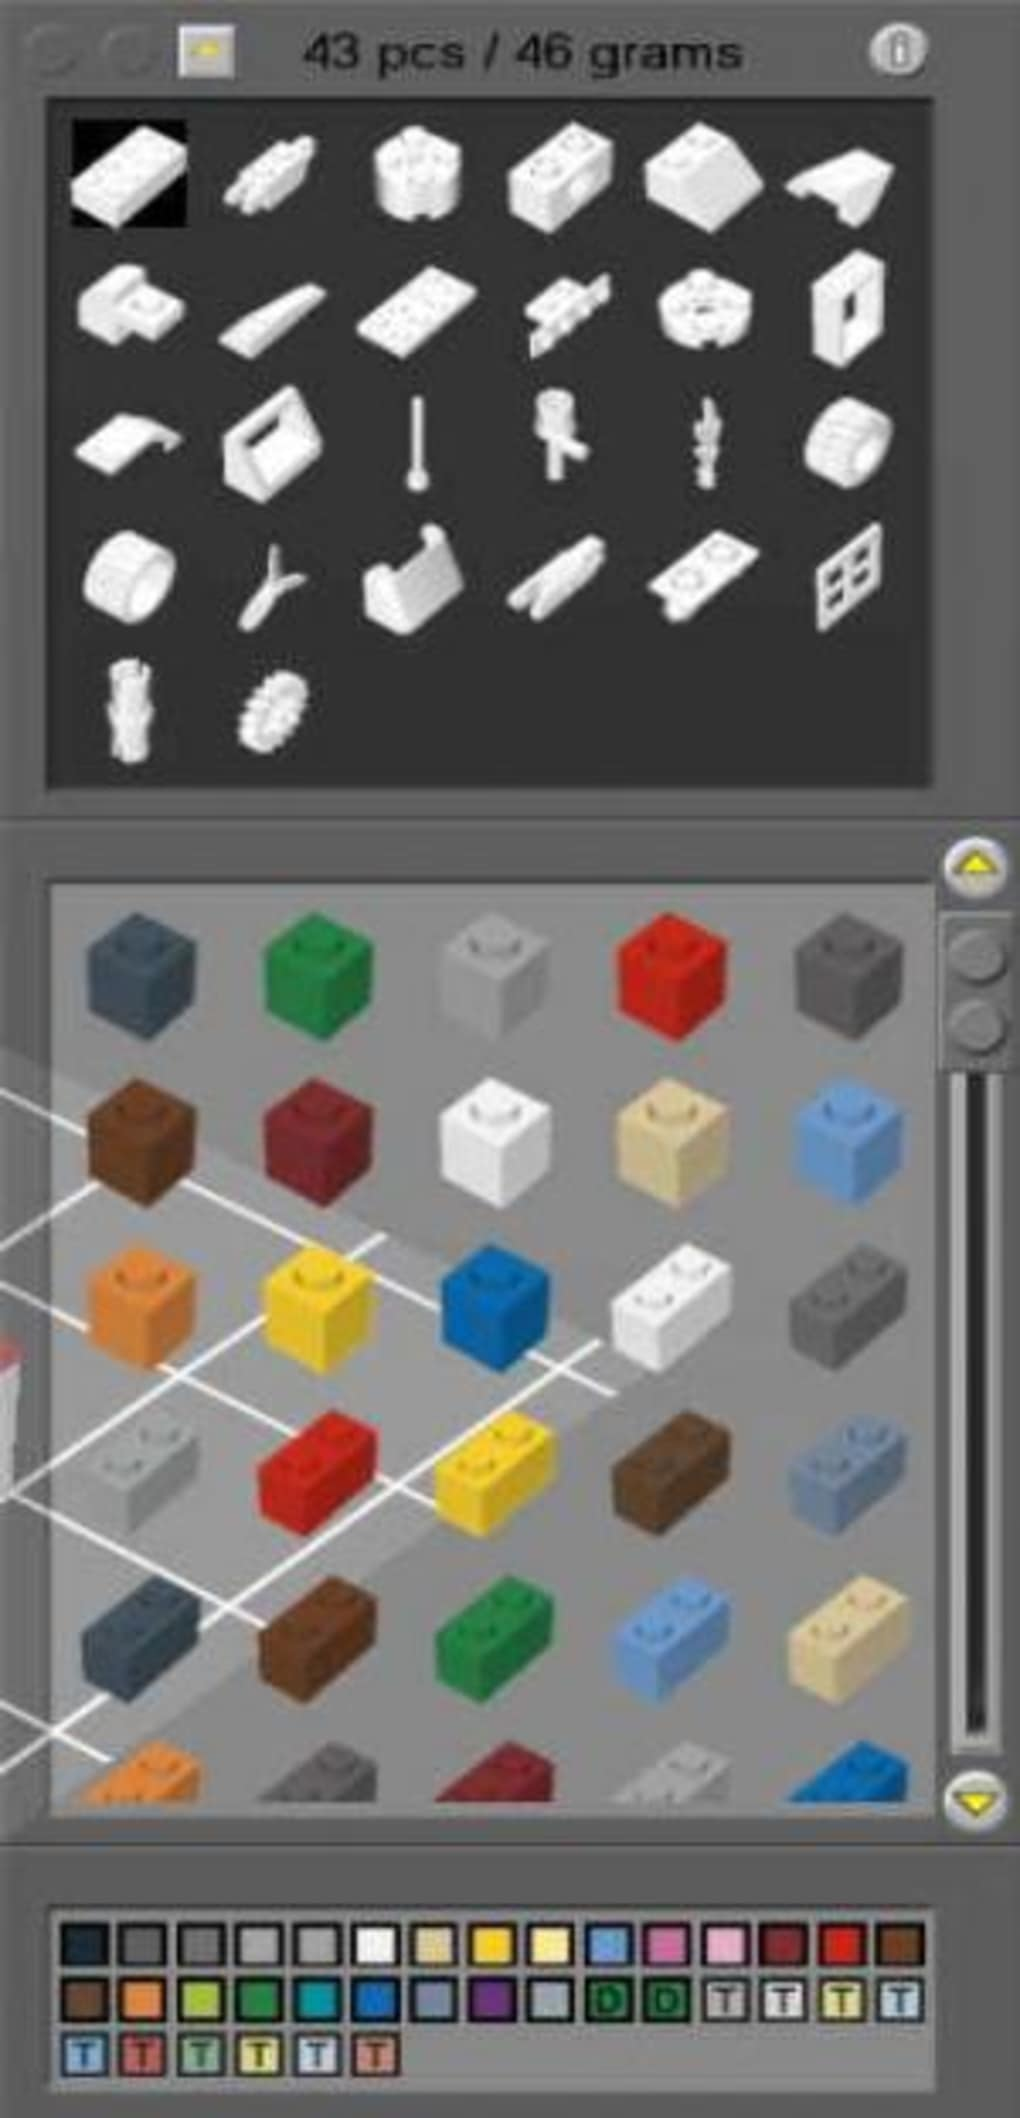 10 Dec 2013 ... LEGO Digital Designer allows you to use virtual LEGO blocks on ... 2013 | old  versions Licence Free OS Support Windows XP, Windows Vista, ...